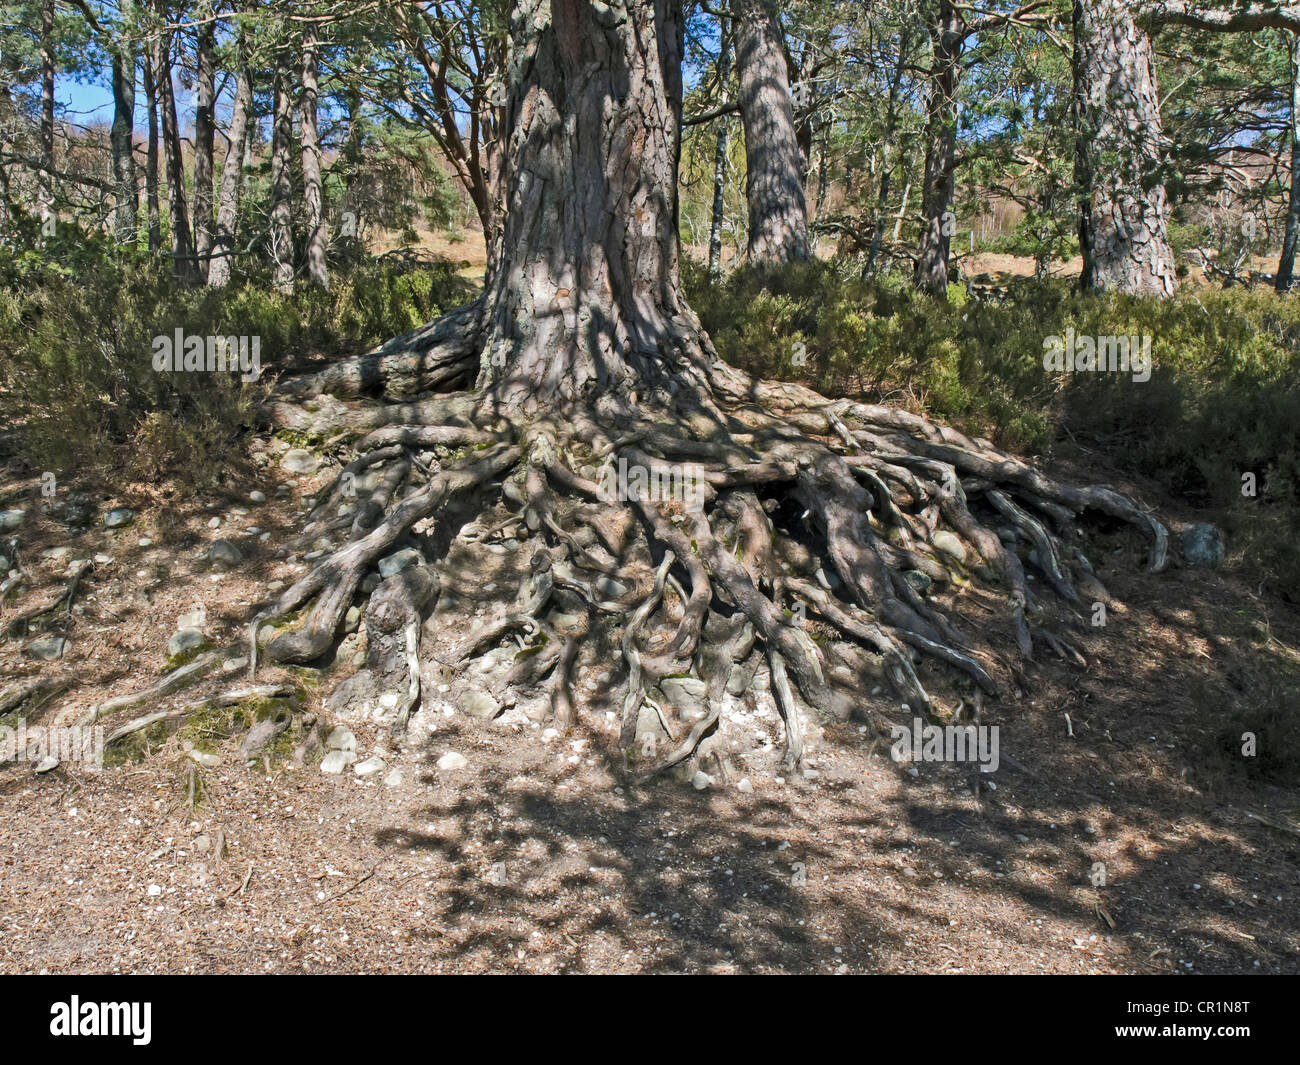 Scots pine tree with complicated root arrangement above ground at Loch an Eilein in Rothiemurchus by Aviemore Highland - Stock Image